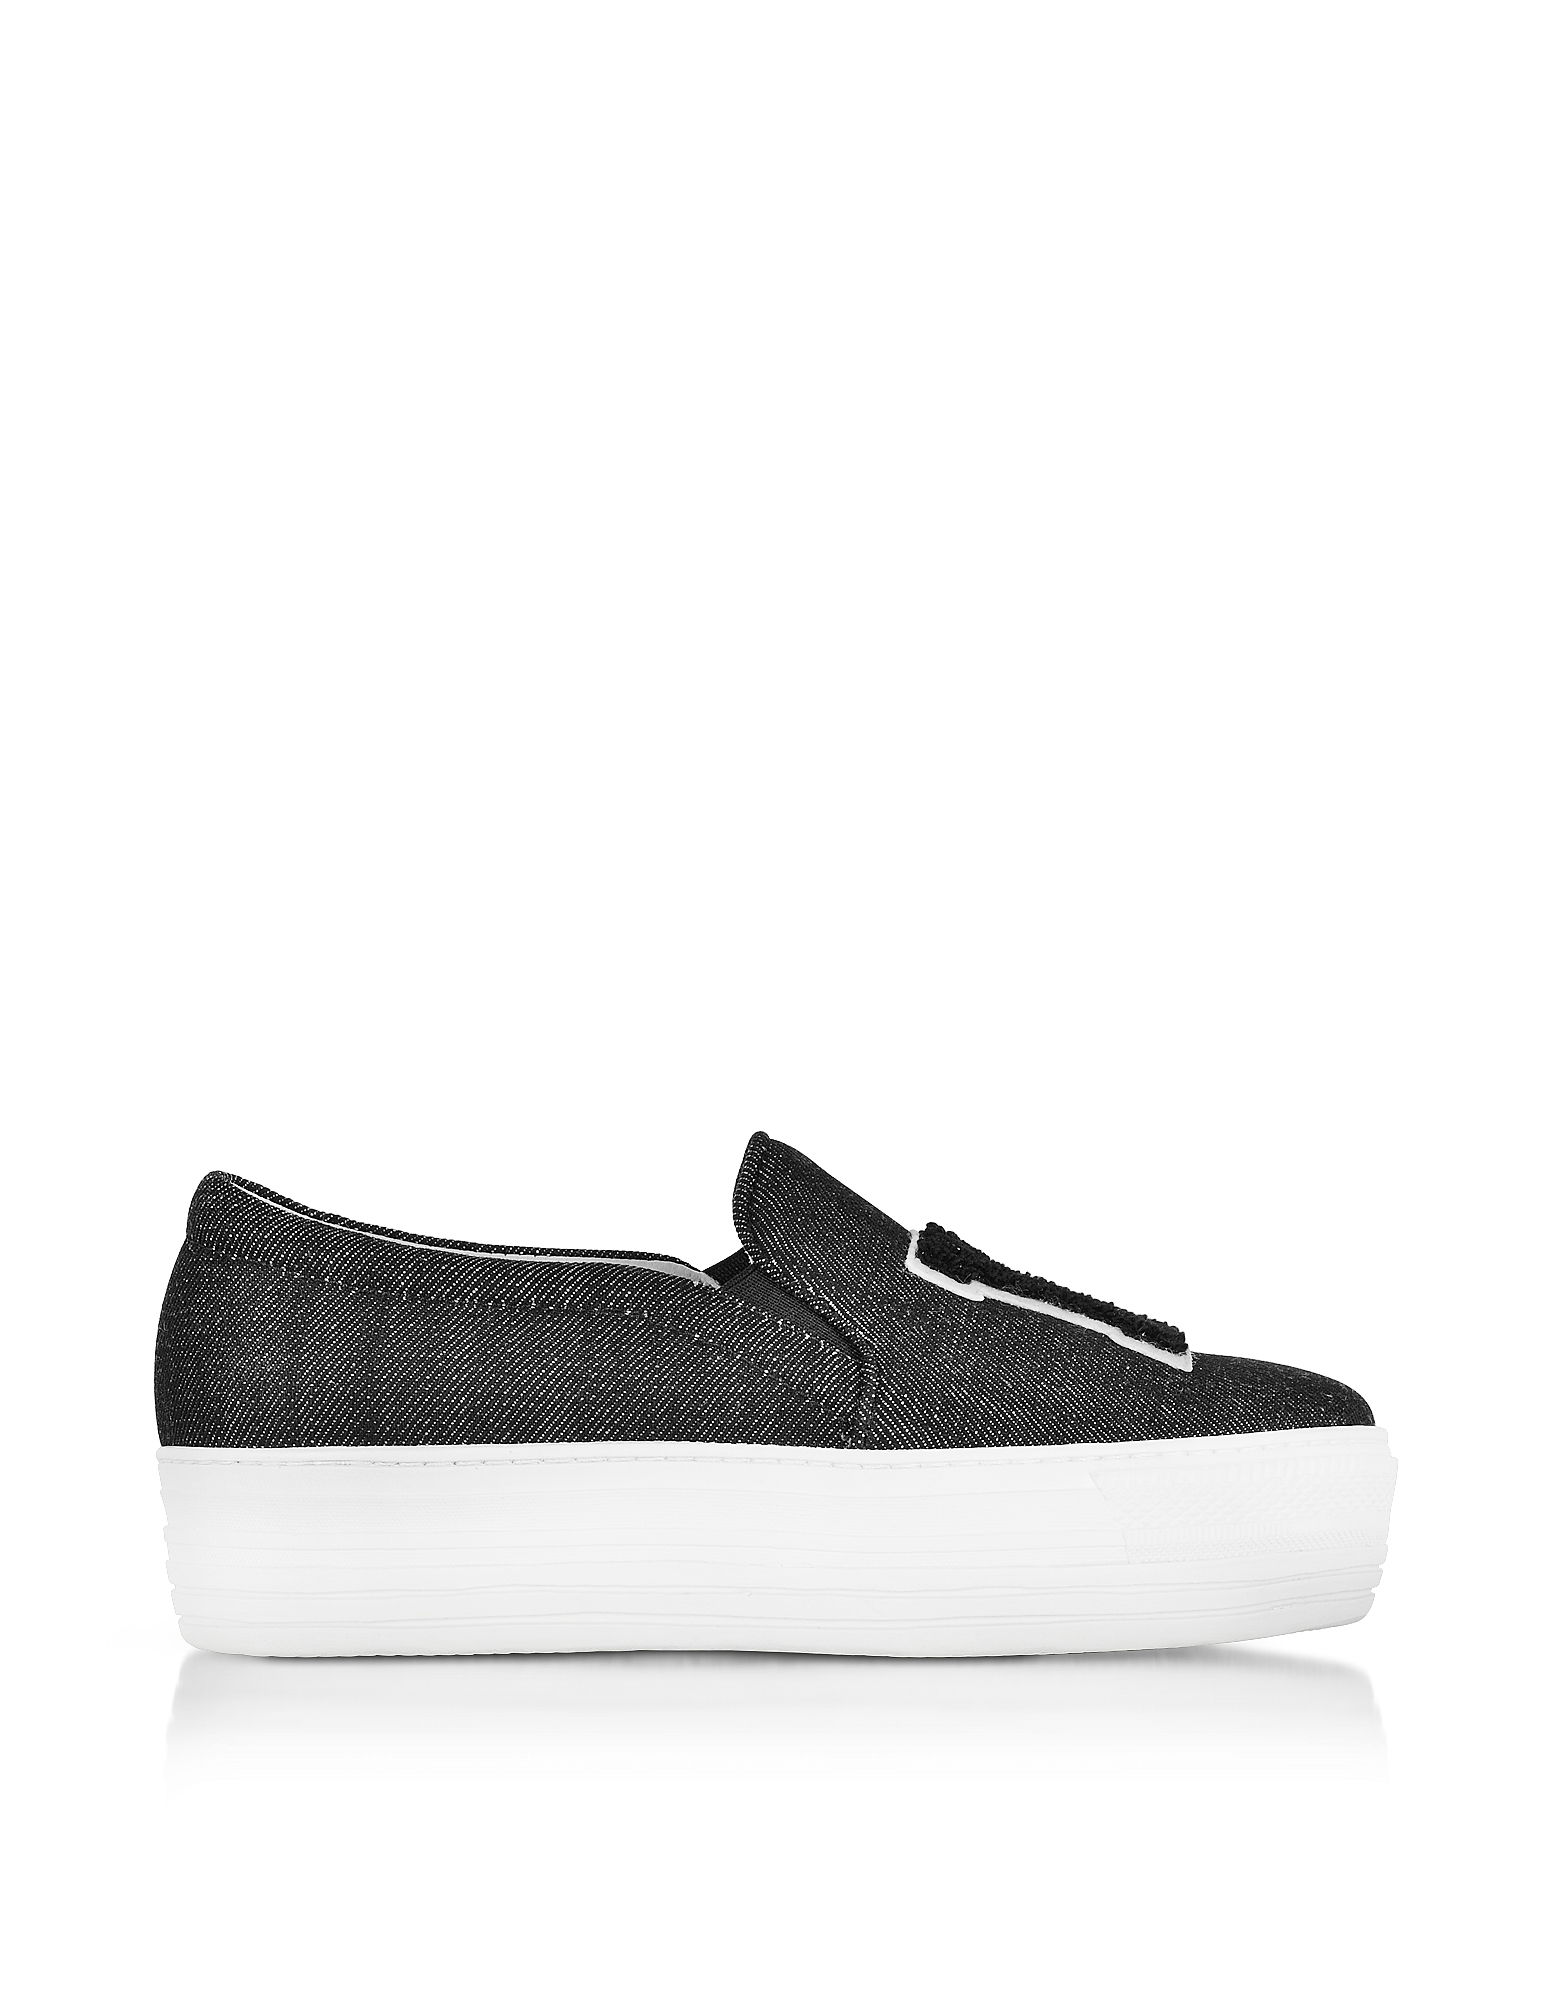 Joshua Sanders Shoes, Black Denim LA Slip on Sneakers